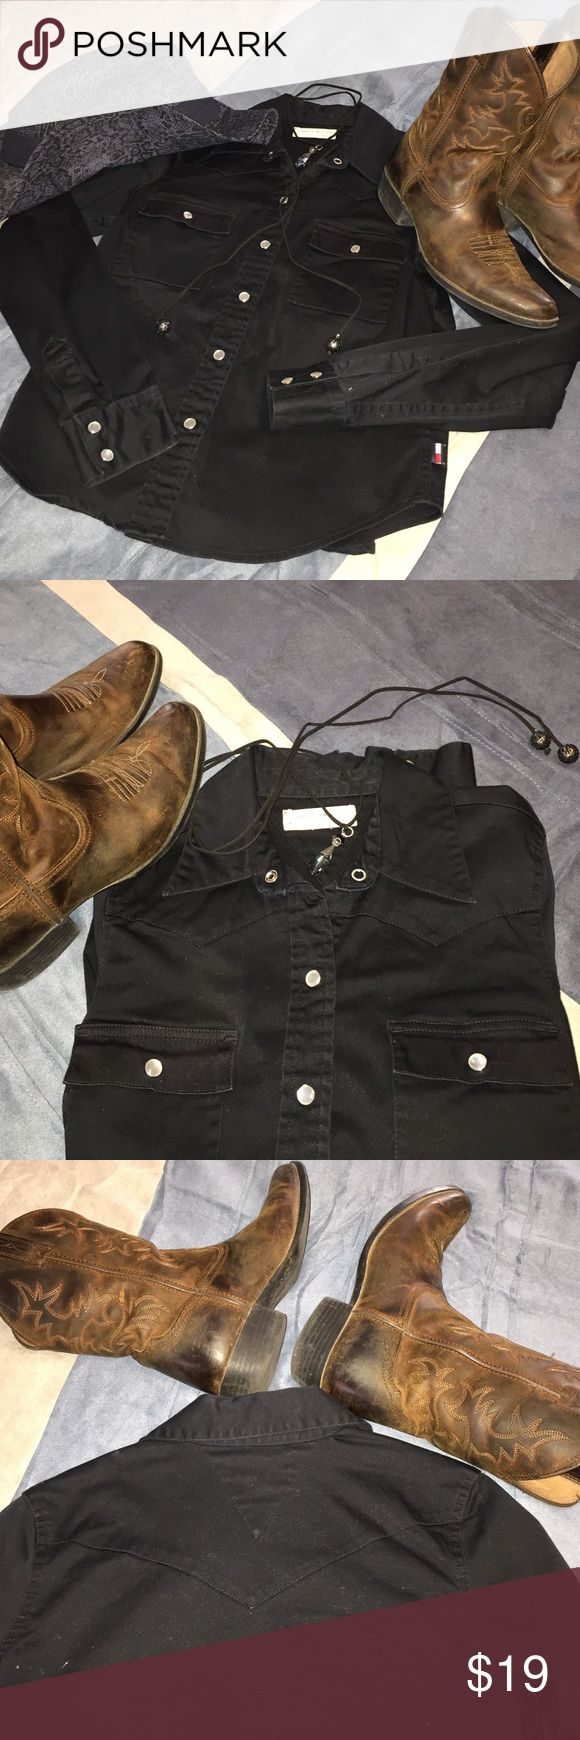 👢Tommy Jeans Cowgirl Shirt with bling buttons👢 👢Tommy Jeans Cowgirl Shirt with bling buttons👢 Perfect Condition 👢 Dark Navy Blue👢 Tommy Hilfiger Tops Button Down Shirts